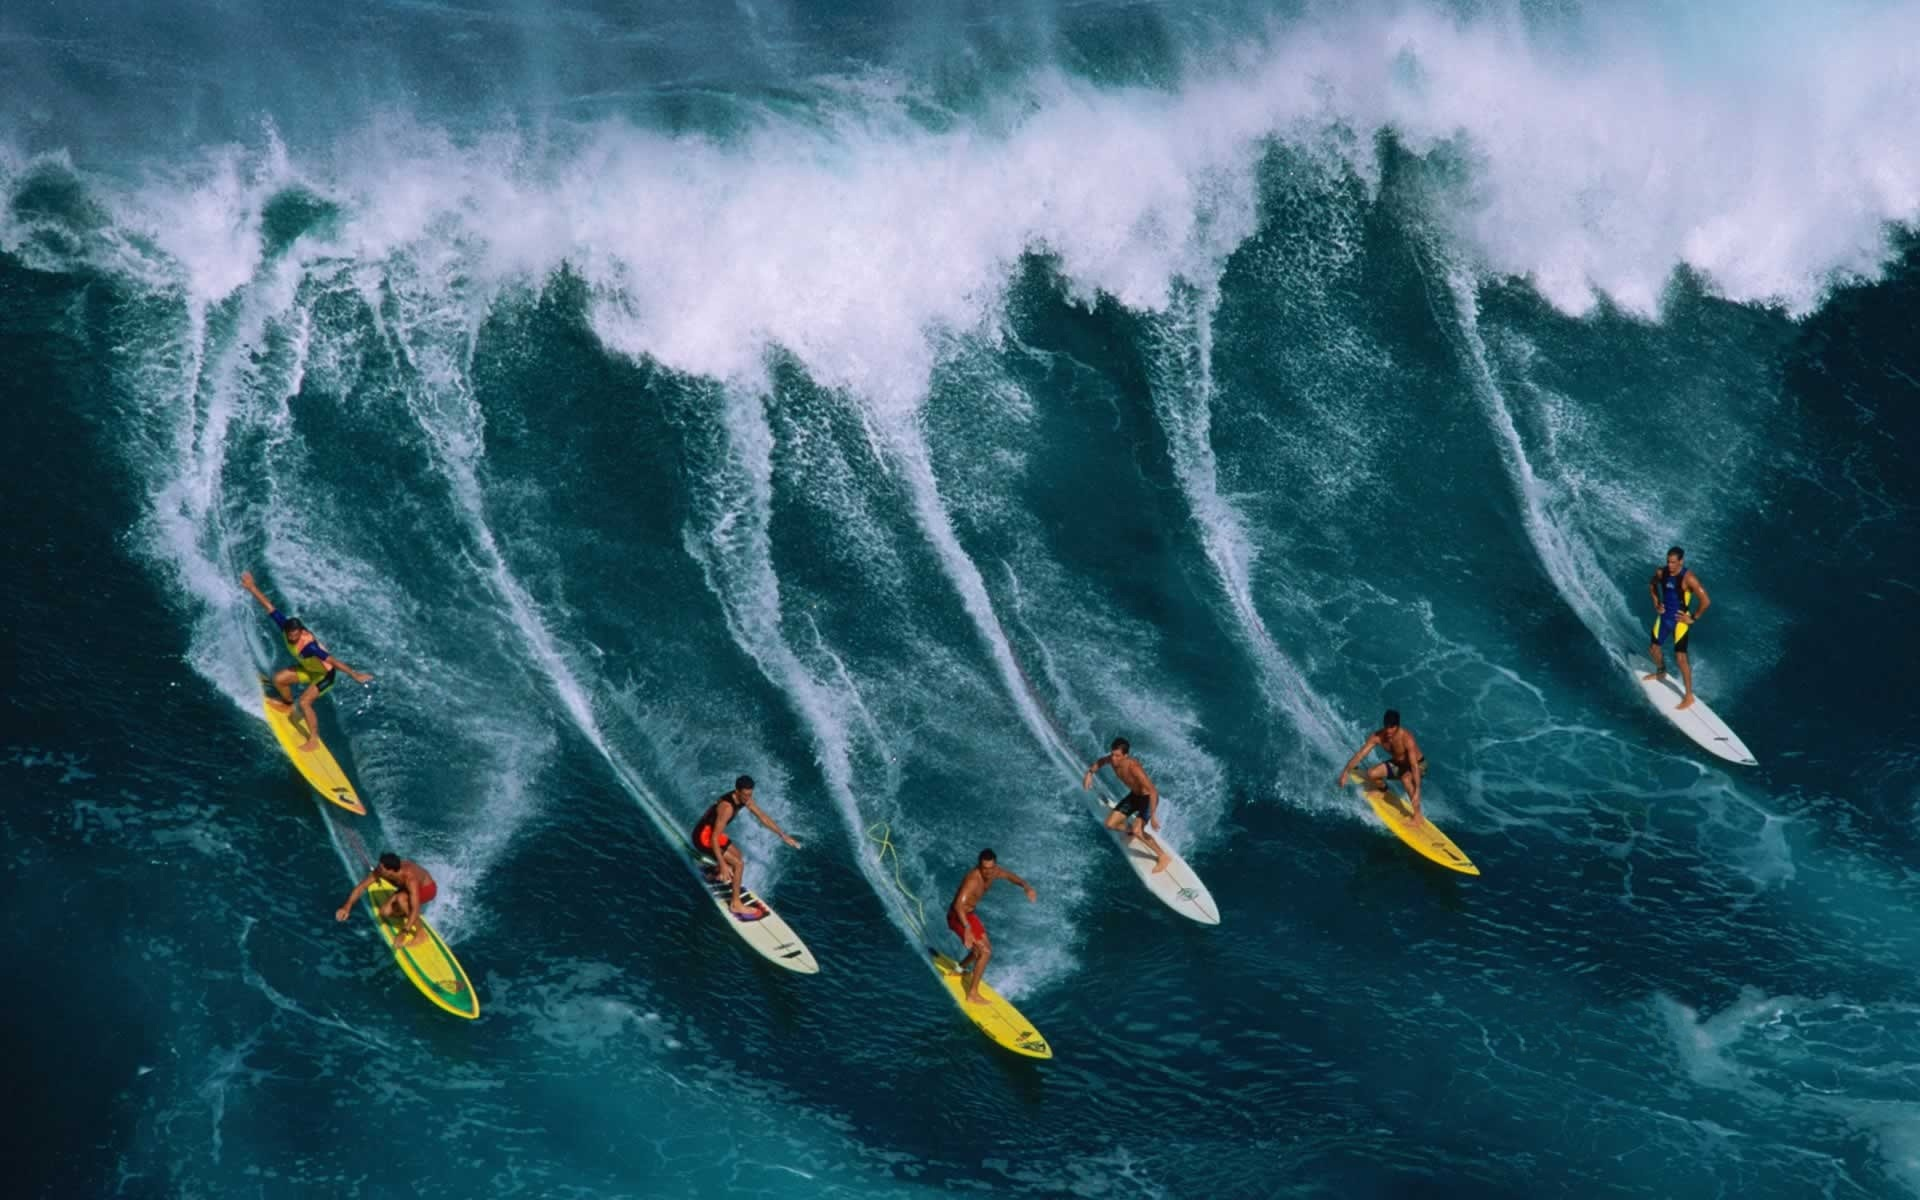 Surf Wallpaper For Walls Surfing group hd wallpaper hot